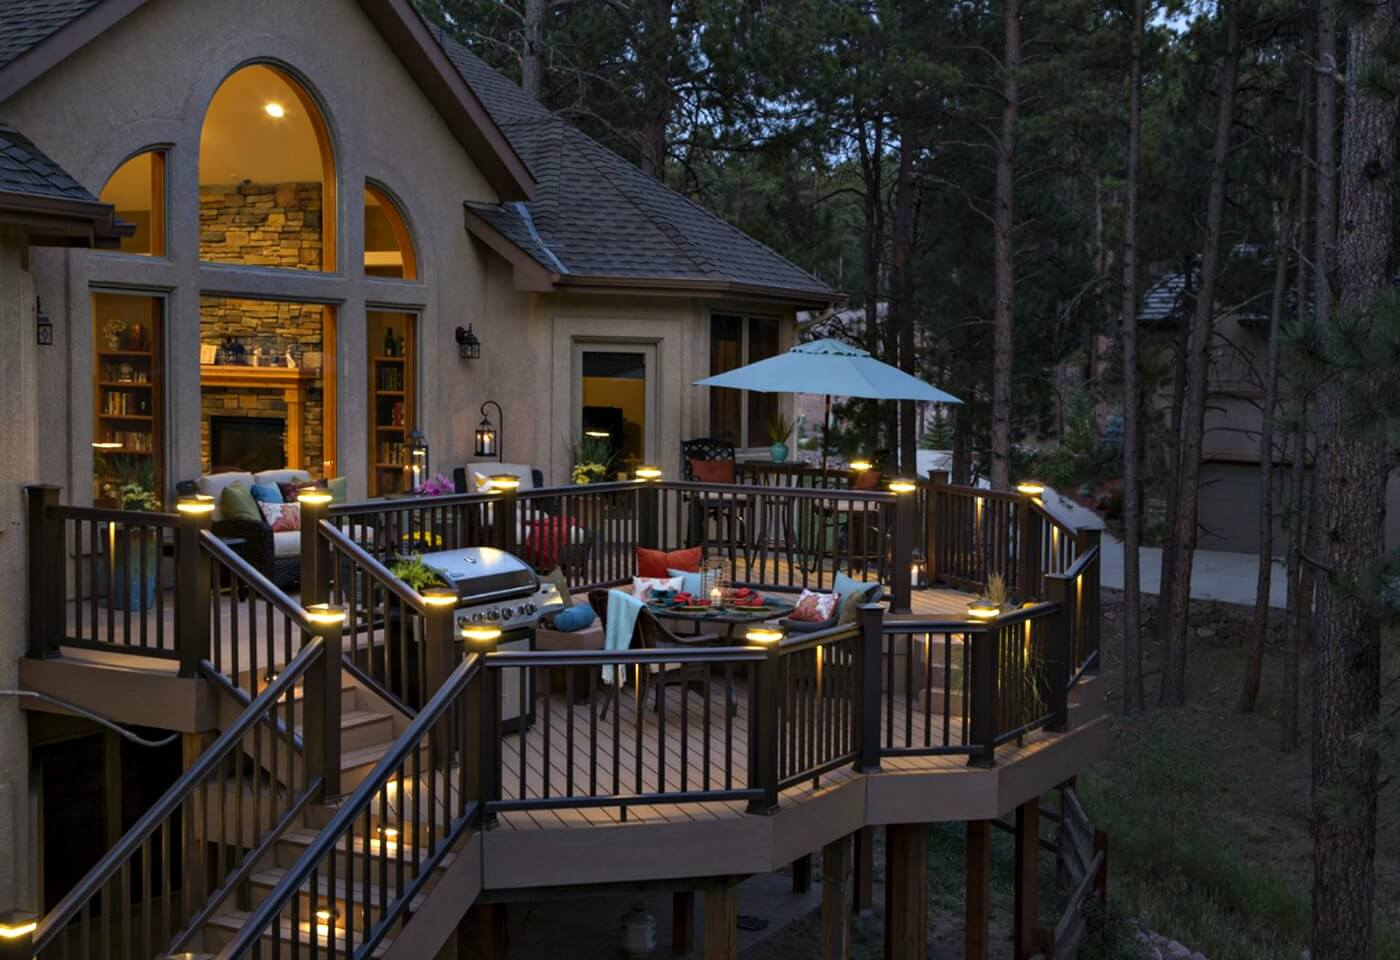 cozy outdoor living space with seating and grill on large deck